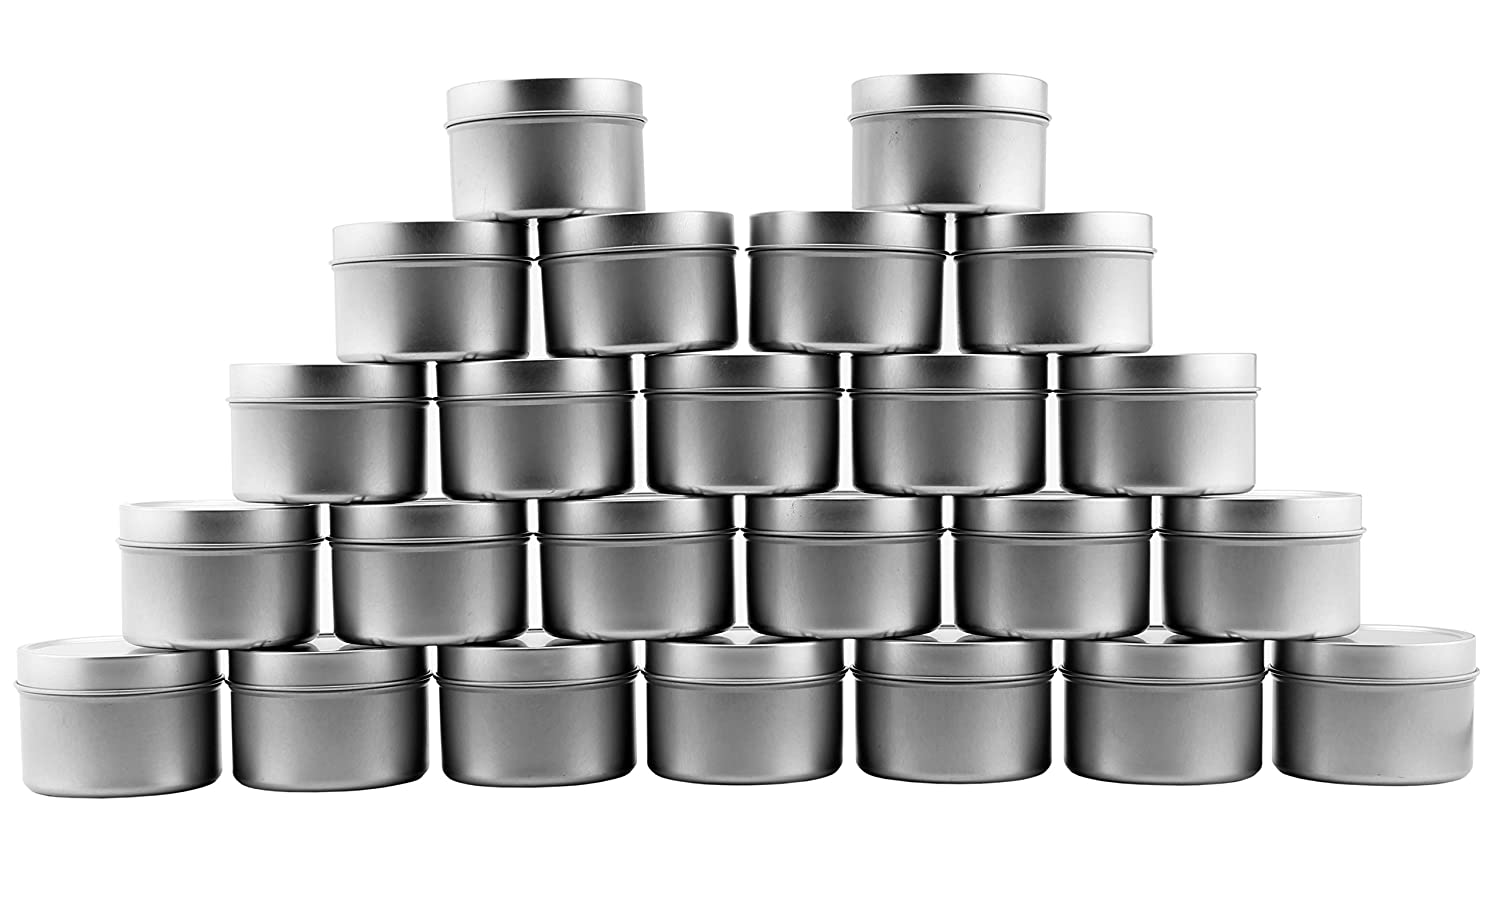 4-Ounce Metal Tins/Candle Tins (24-Pack); Round Containers with Slip-On Lids for Party Favors, Candle Making, Spices, Gifts